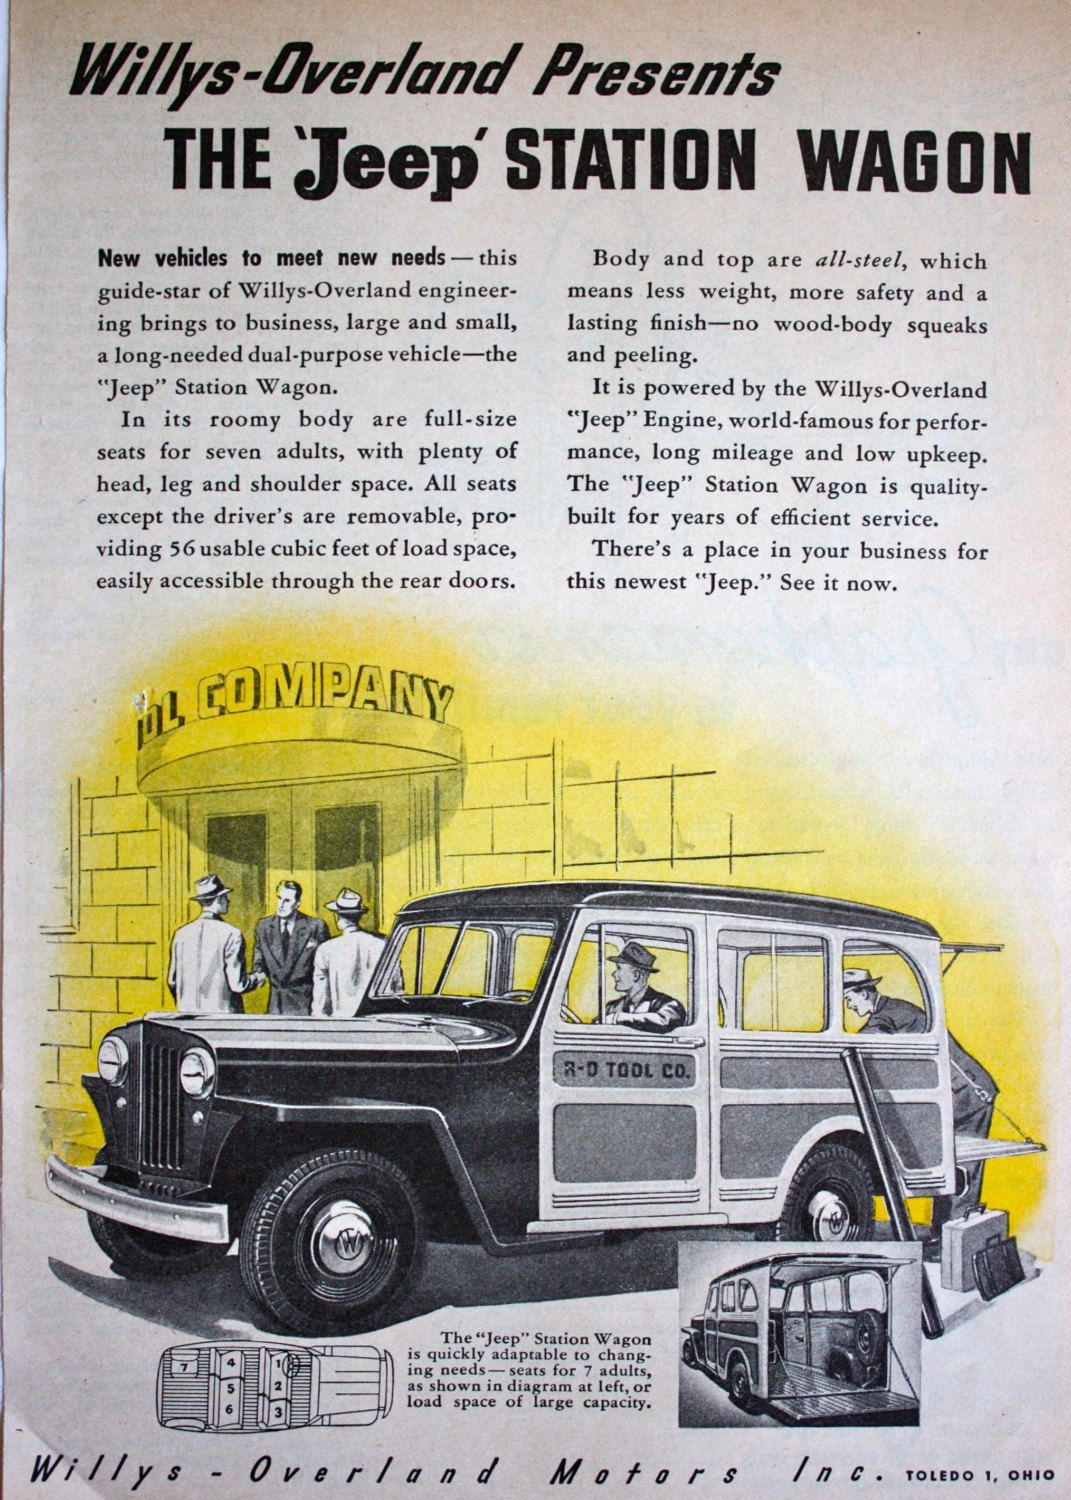 1946 Willys'Overland Jeep Station Wagon 1940's Illustration Art Vintage  Print Ad…